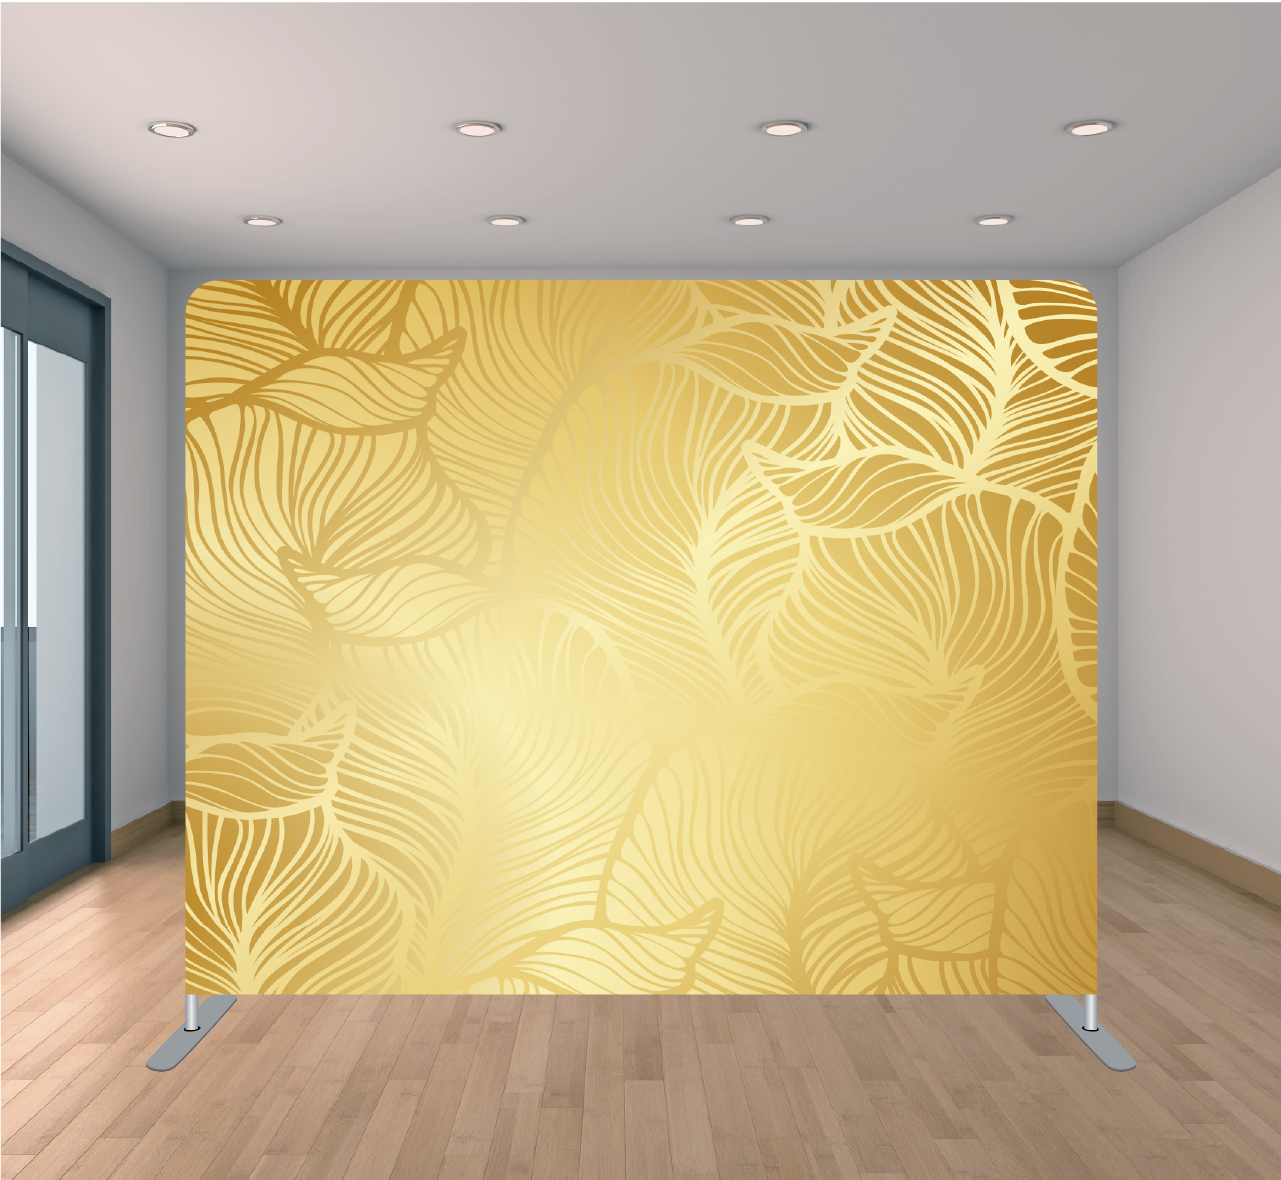 8X8ft Pillowcase Tension Backdrop- Gold Leaf